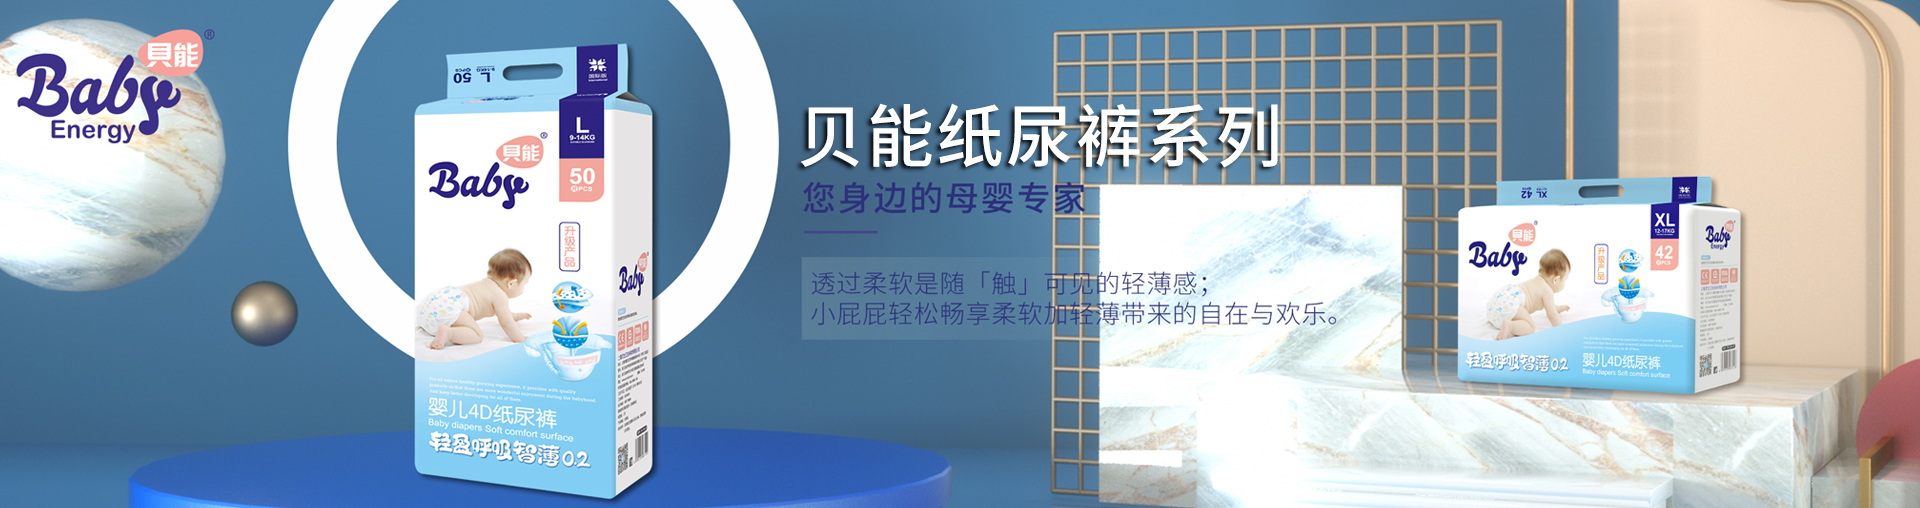 http://www.uniquality.cn/data/upload/202008/20200831090355_630.png